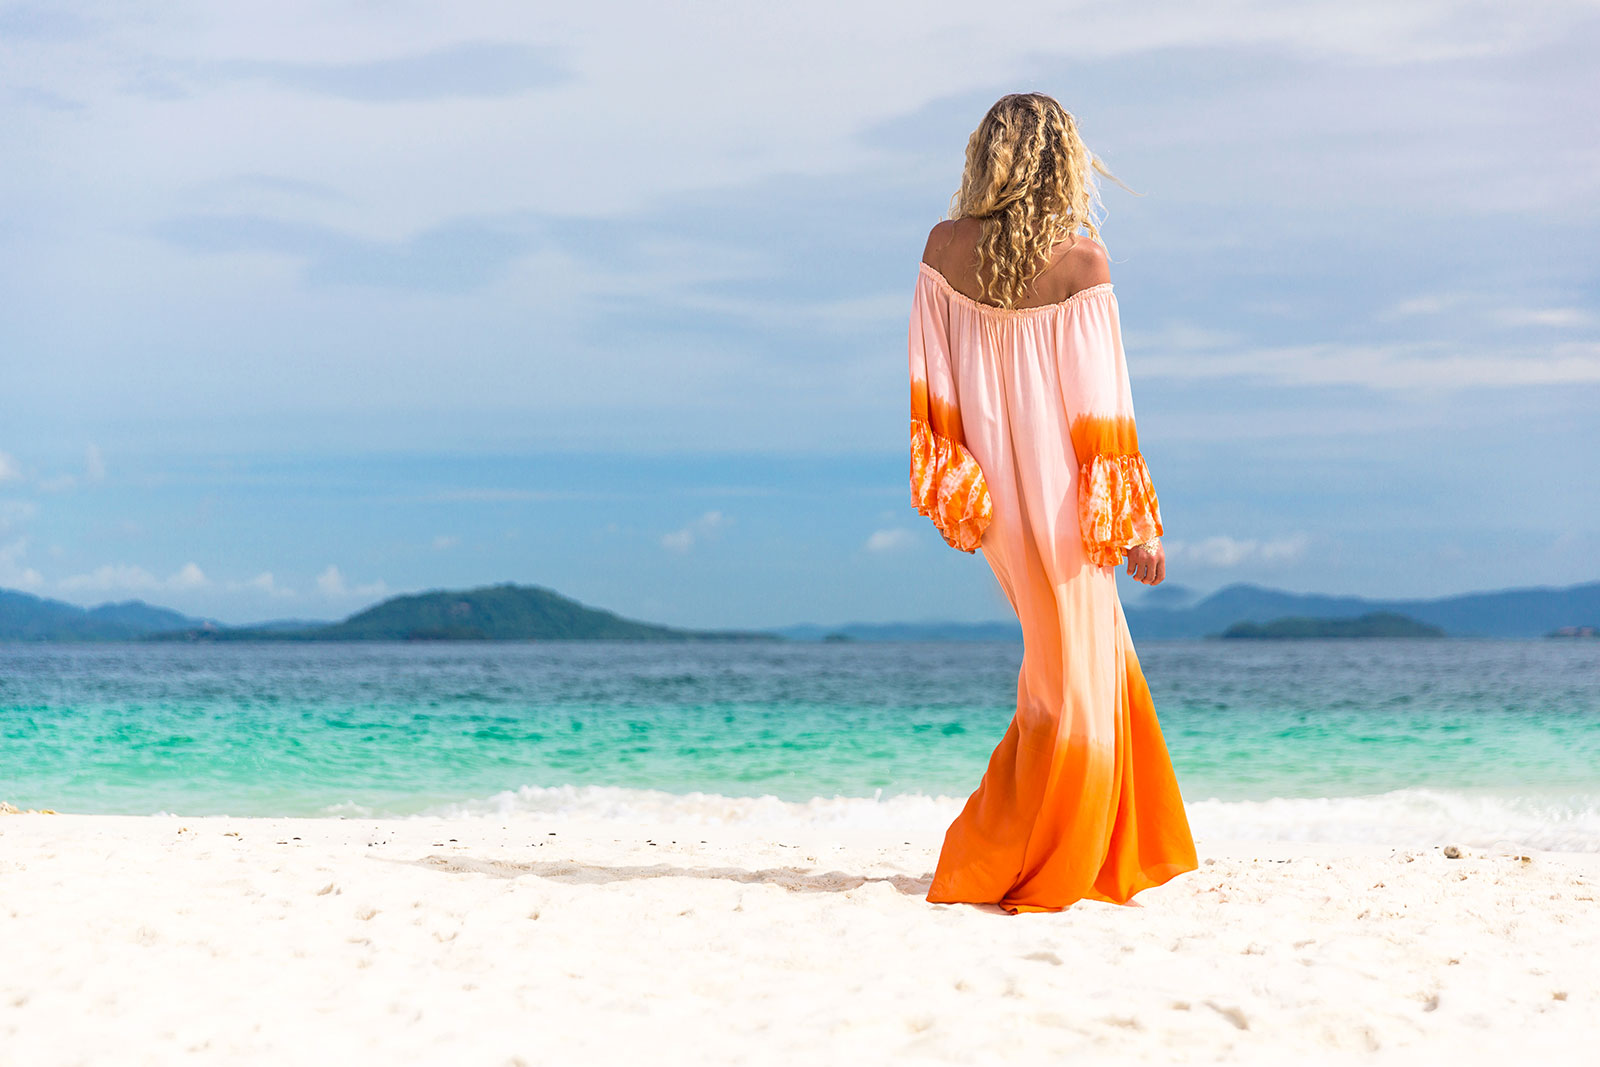 Womens beach fashion that follow the boho chic and gypsy trend from Australia.